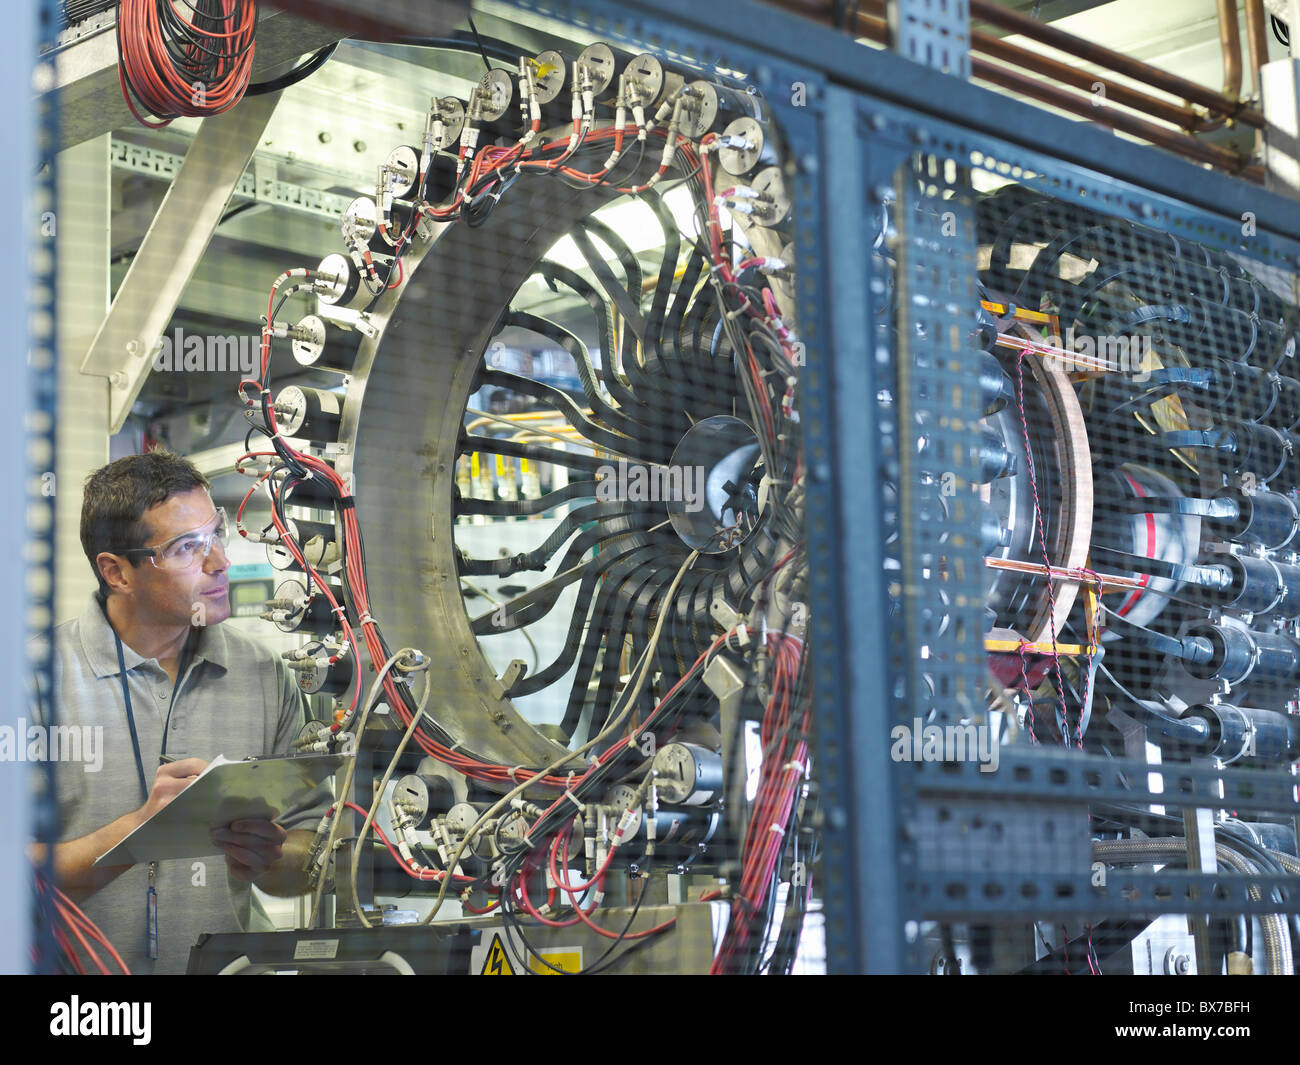 Scientist inspects particle accelerator - Stock Image